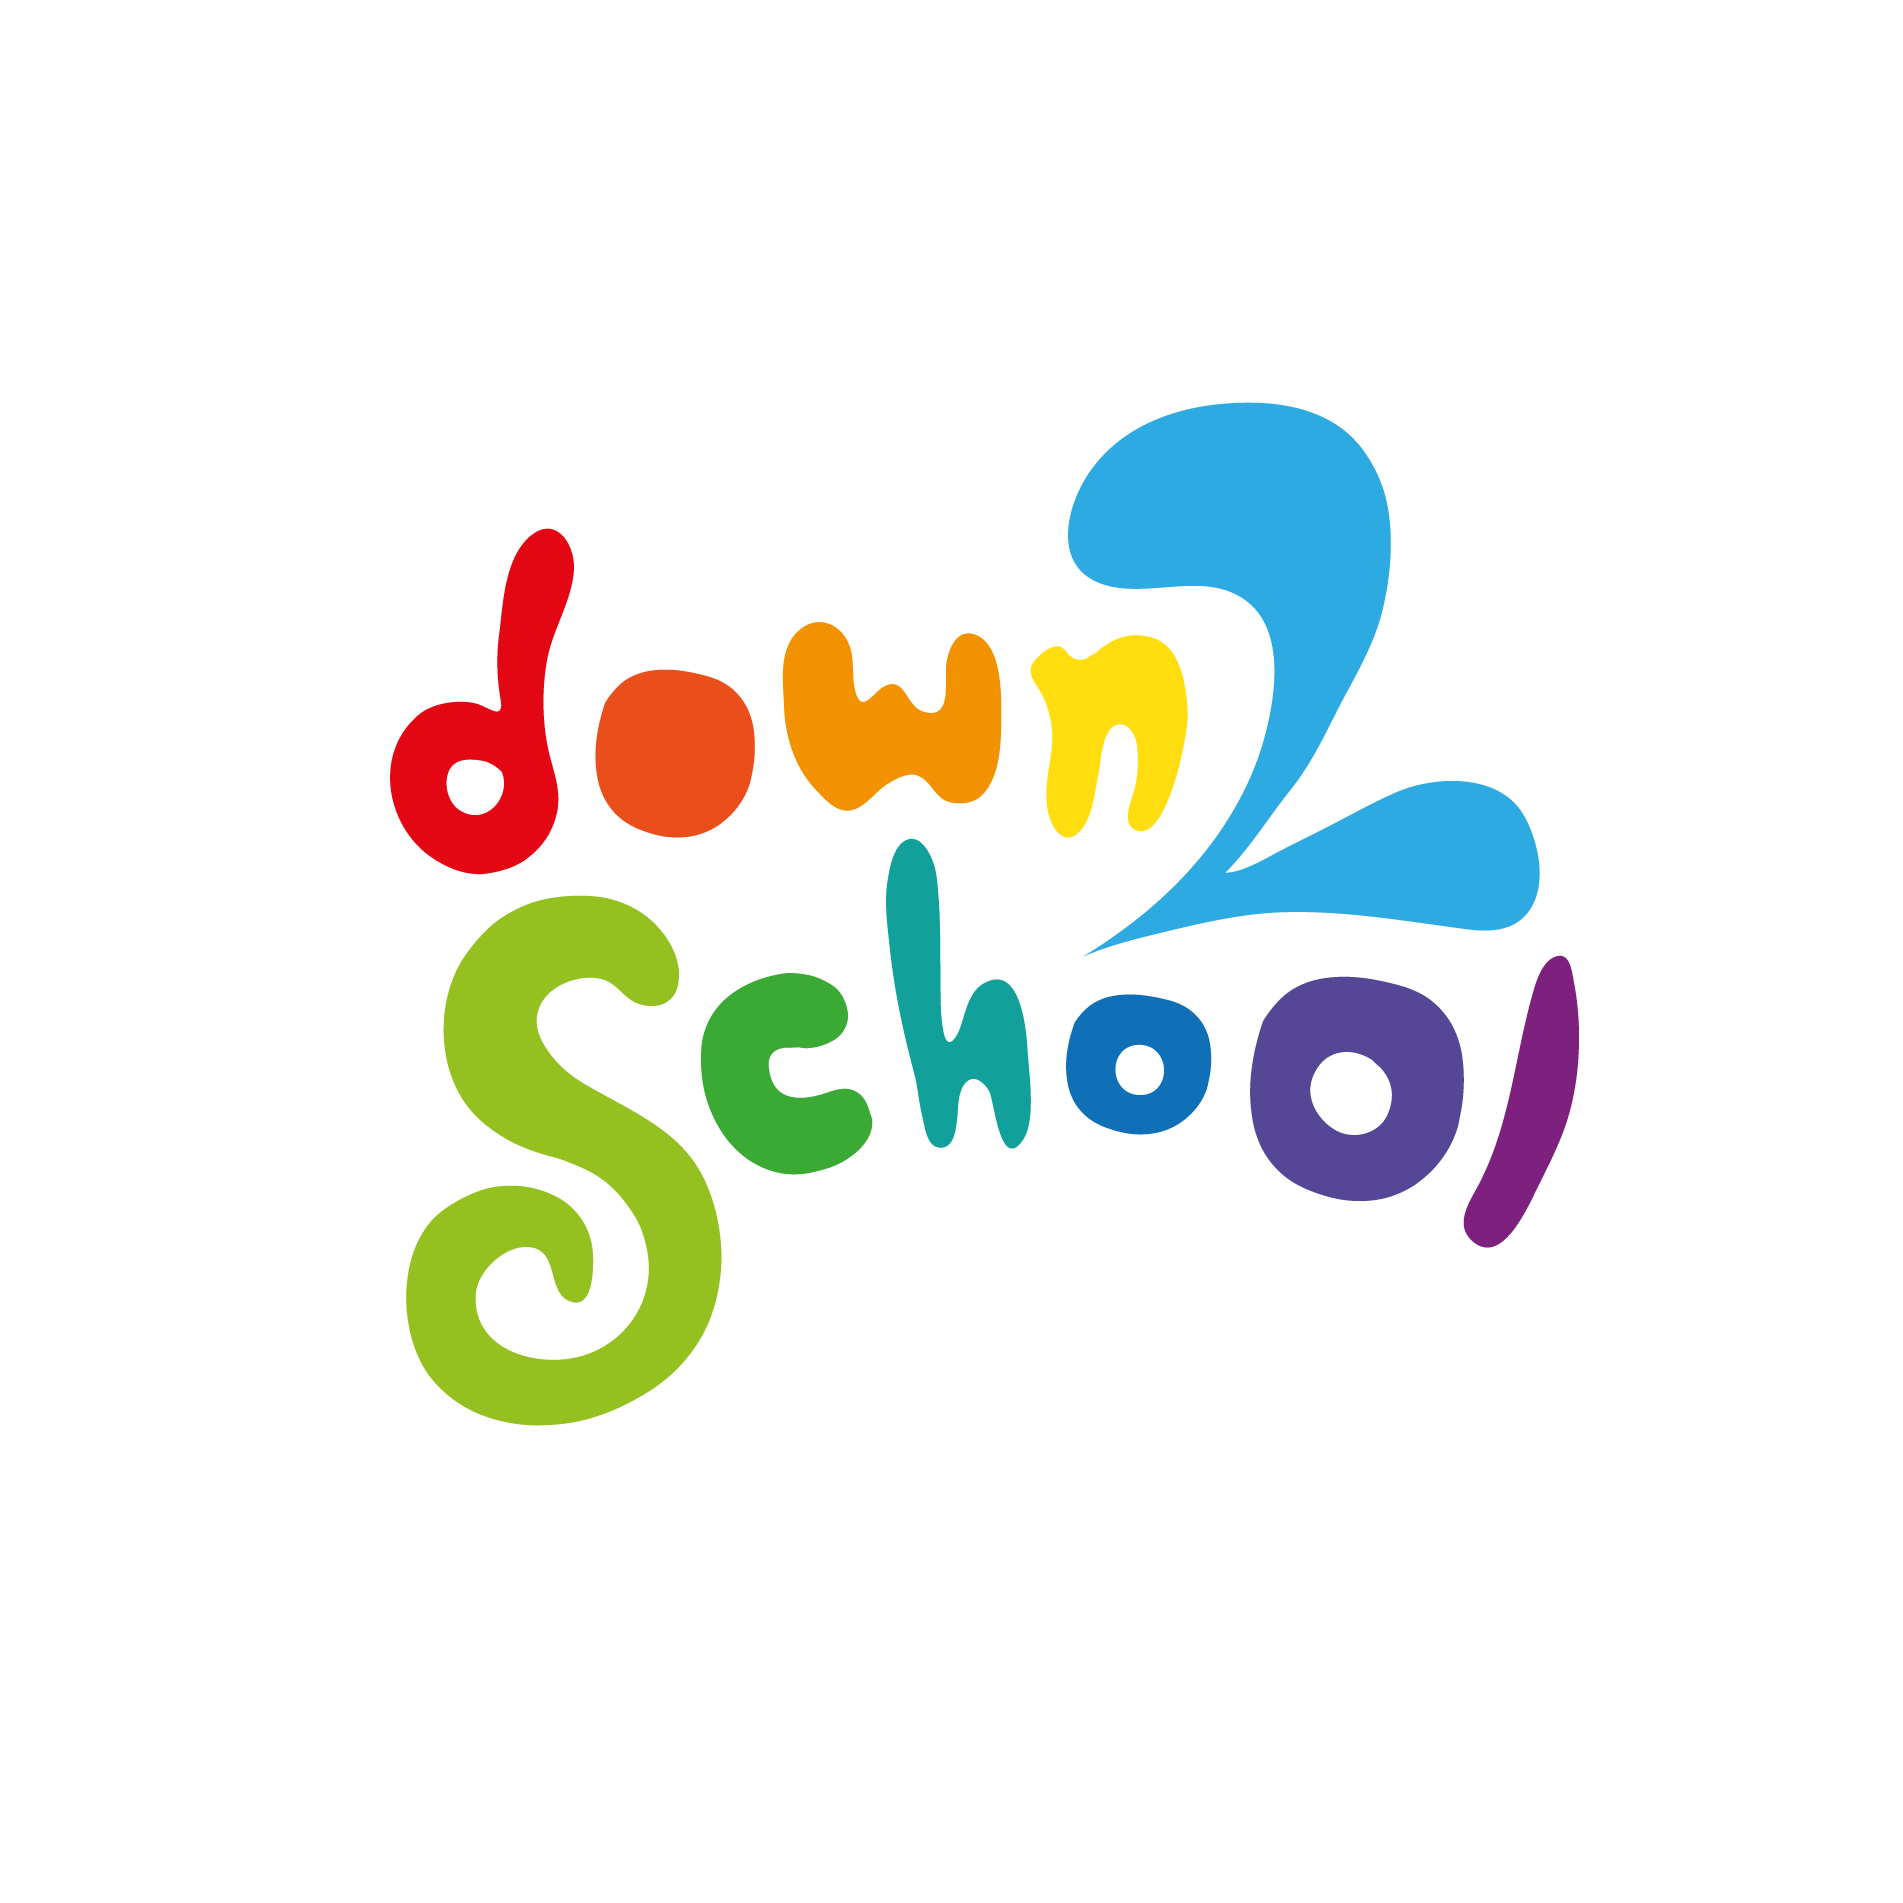 Down 2 School Logo